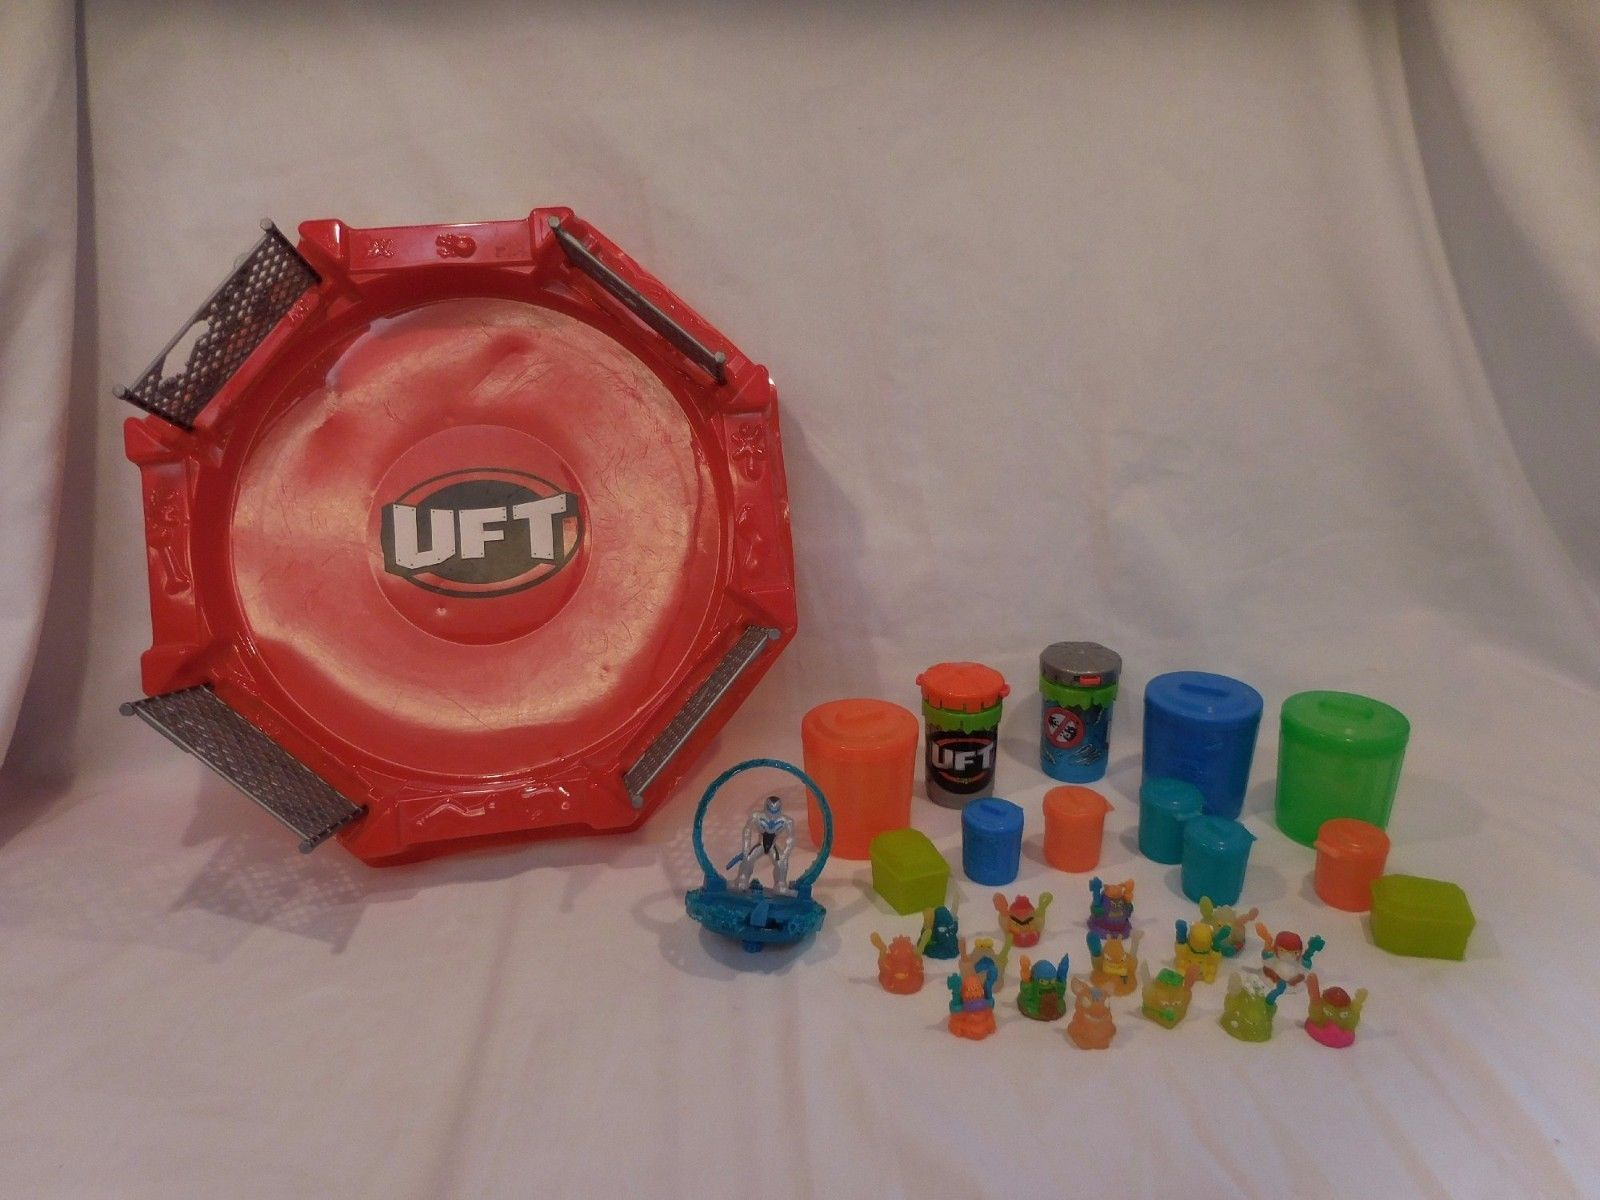 The Trash Pack Ultimate Fighting Trashies Red Lot + Battle Arena TRASHIES UFT